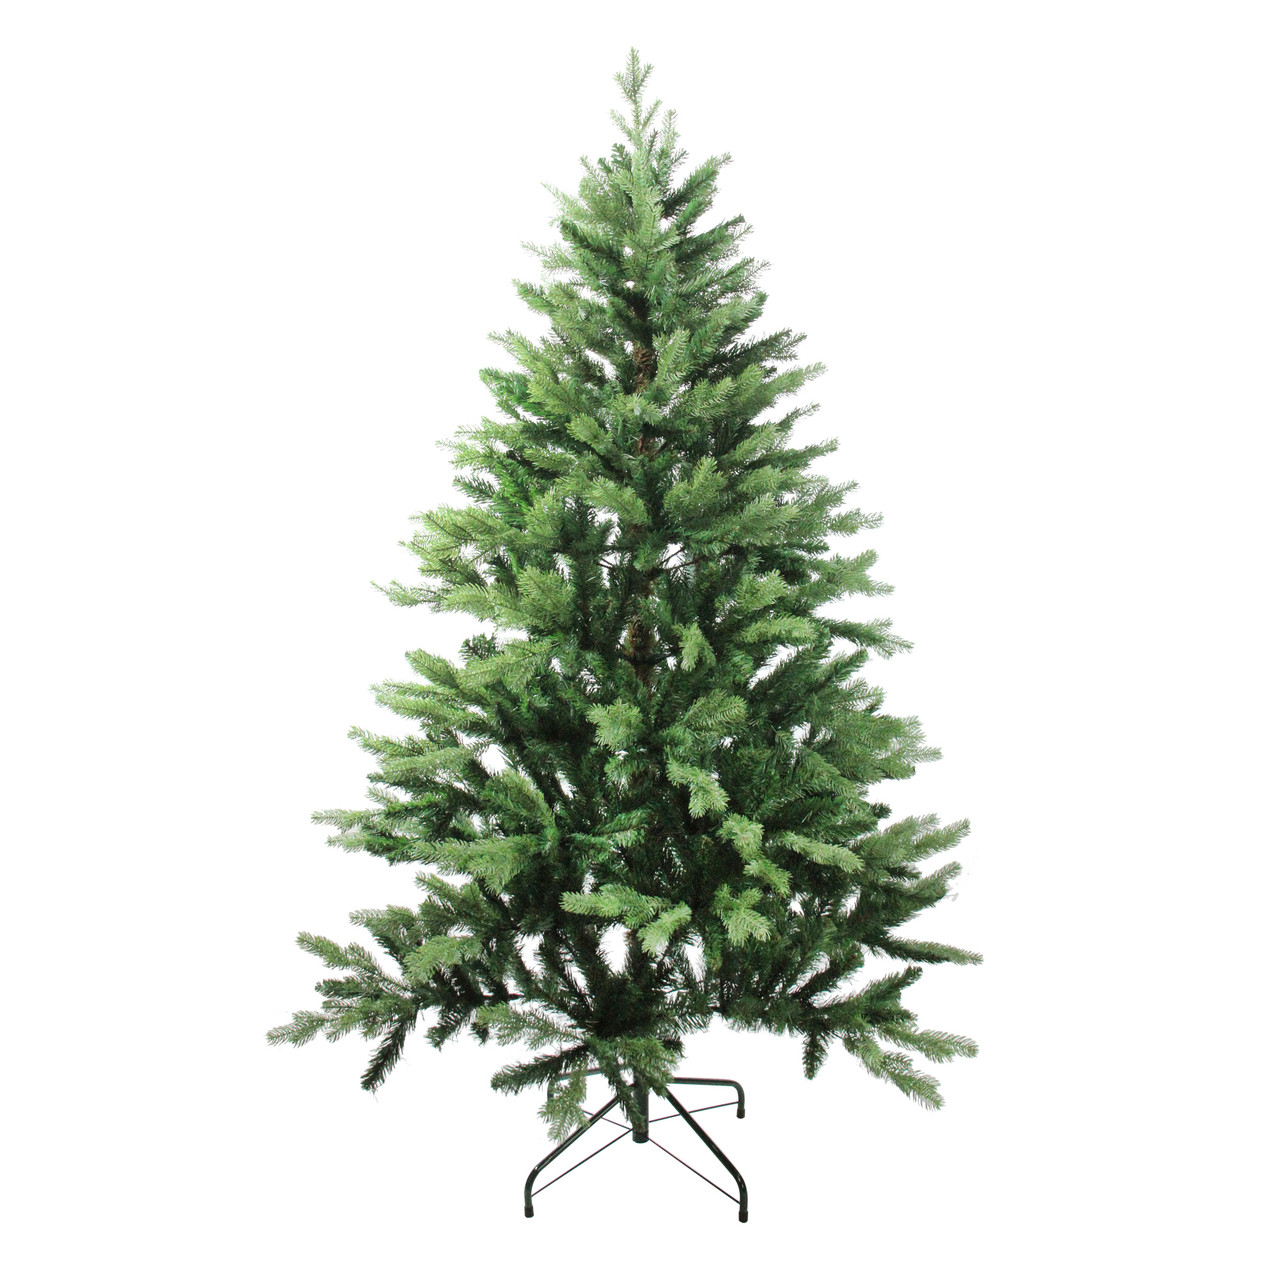 Artificial Christmas Tree Branches.7 Mixed Coniferous Pine Artificial Christmas Tree Unlit 32623775